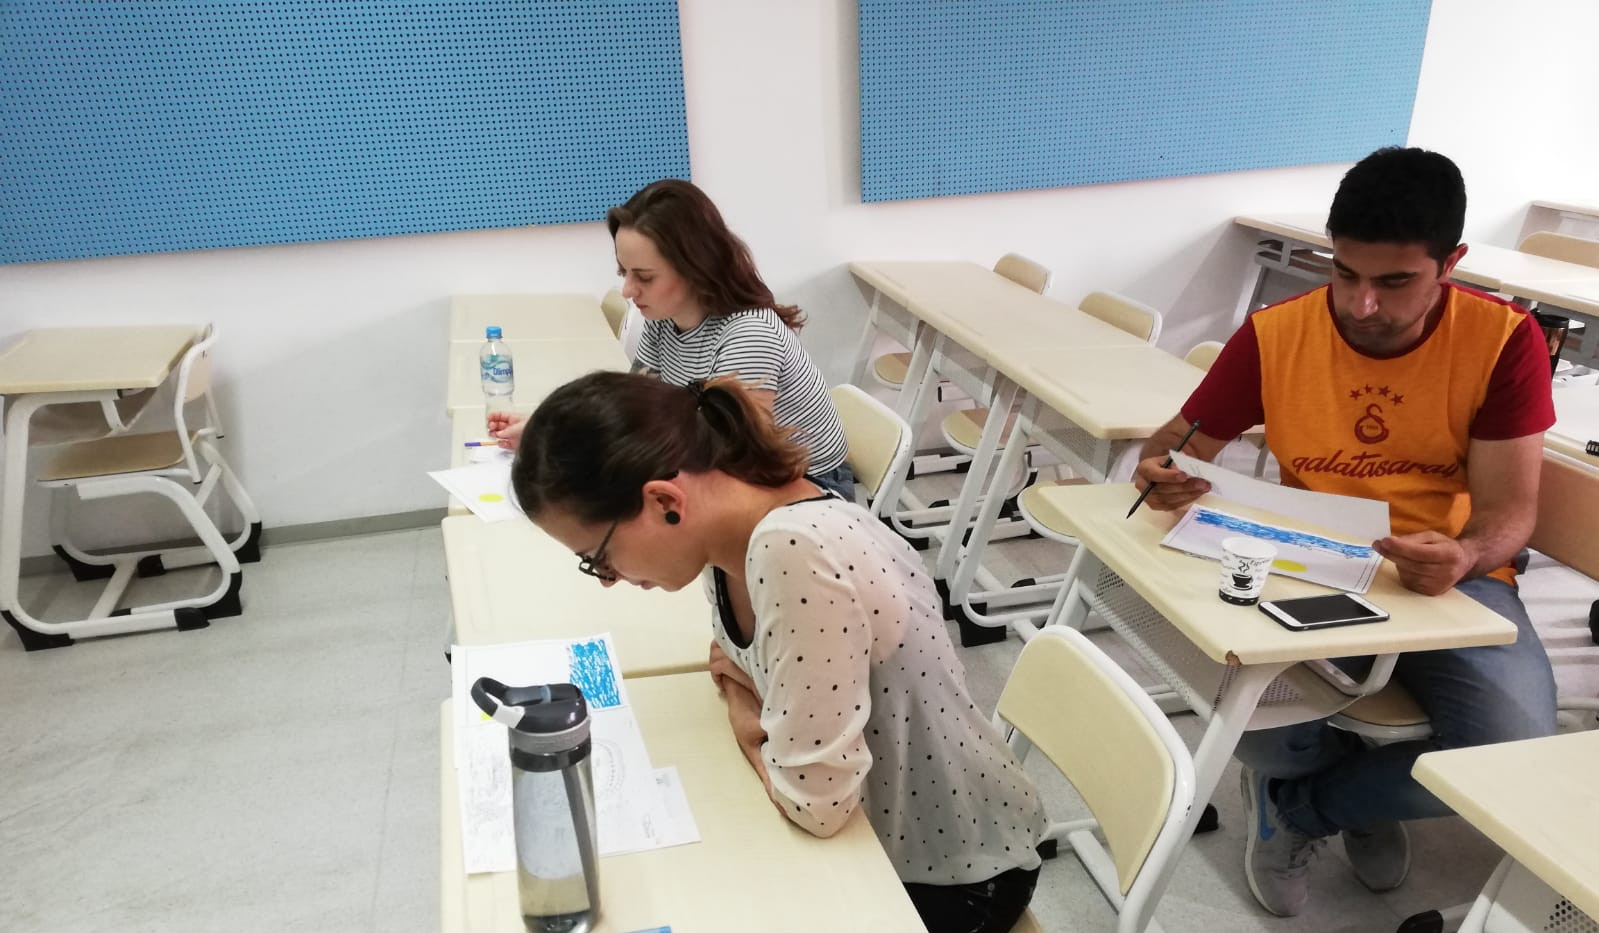 Students are learning about equality and diversity at the International University of Sarajevo/Balkan Studies Centre.